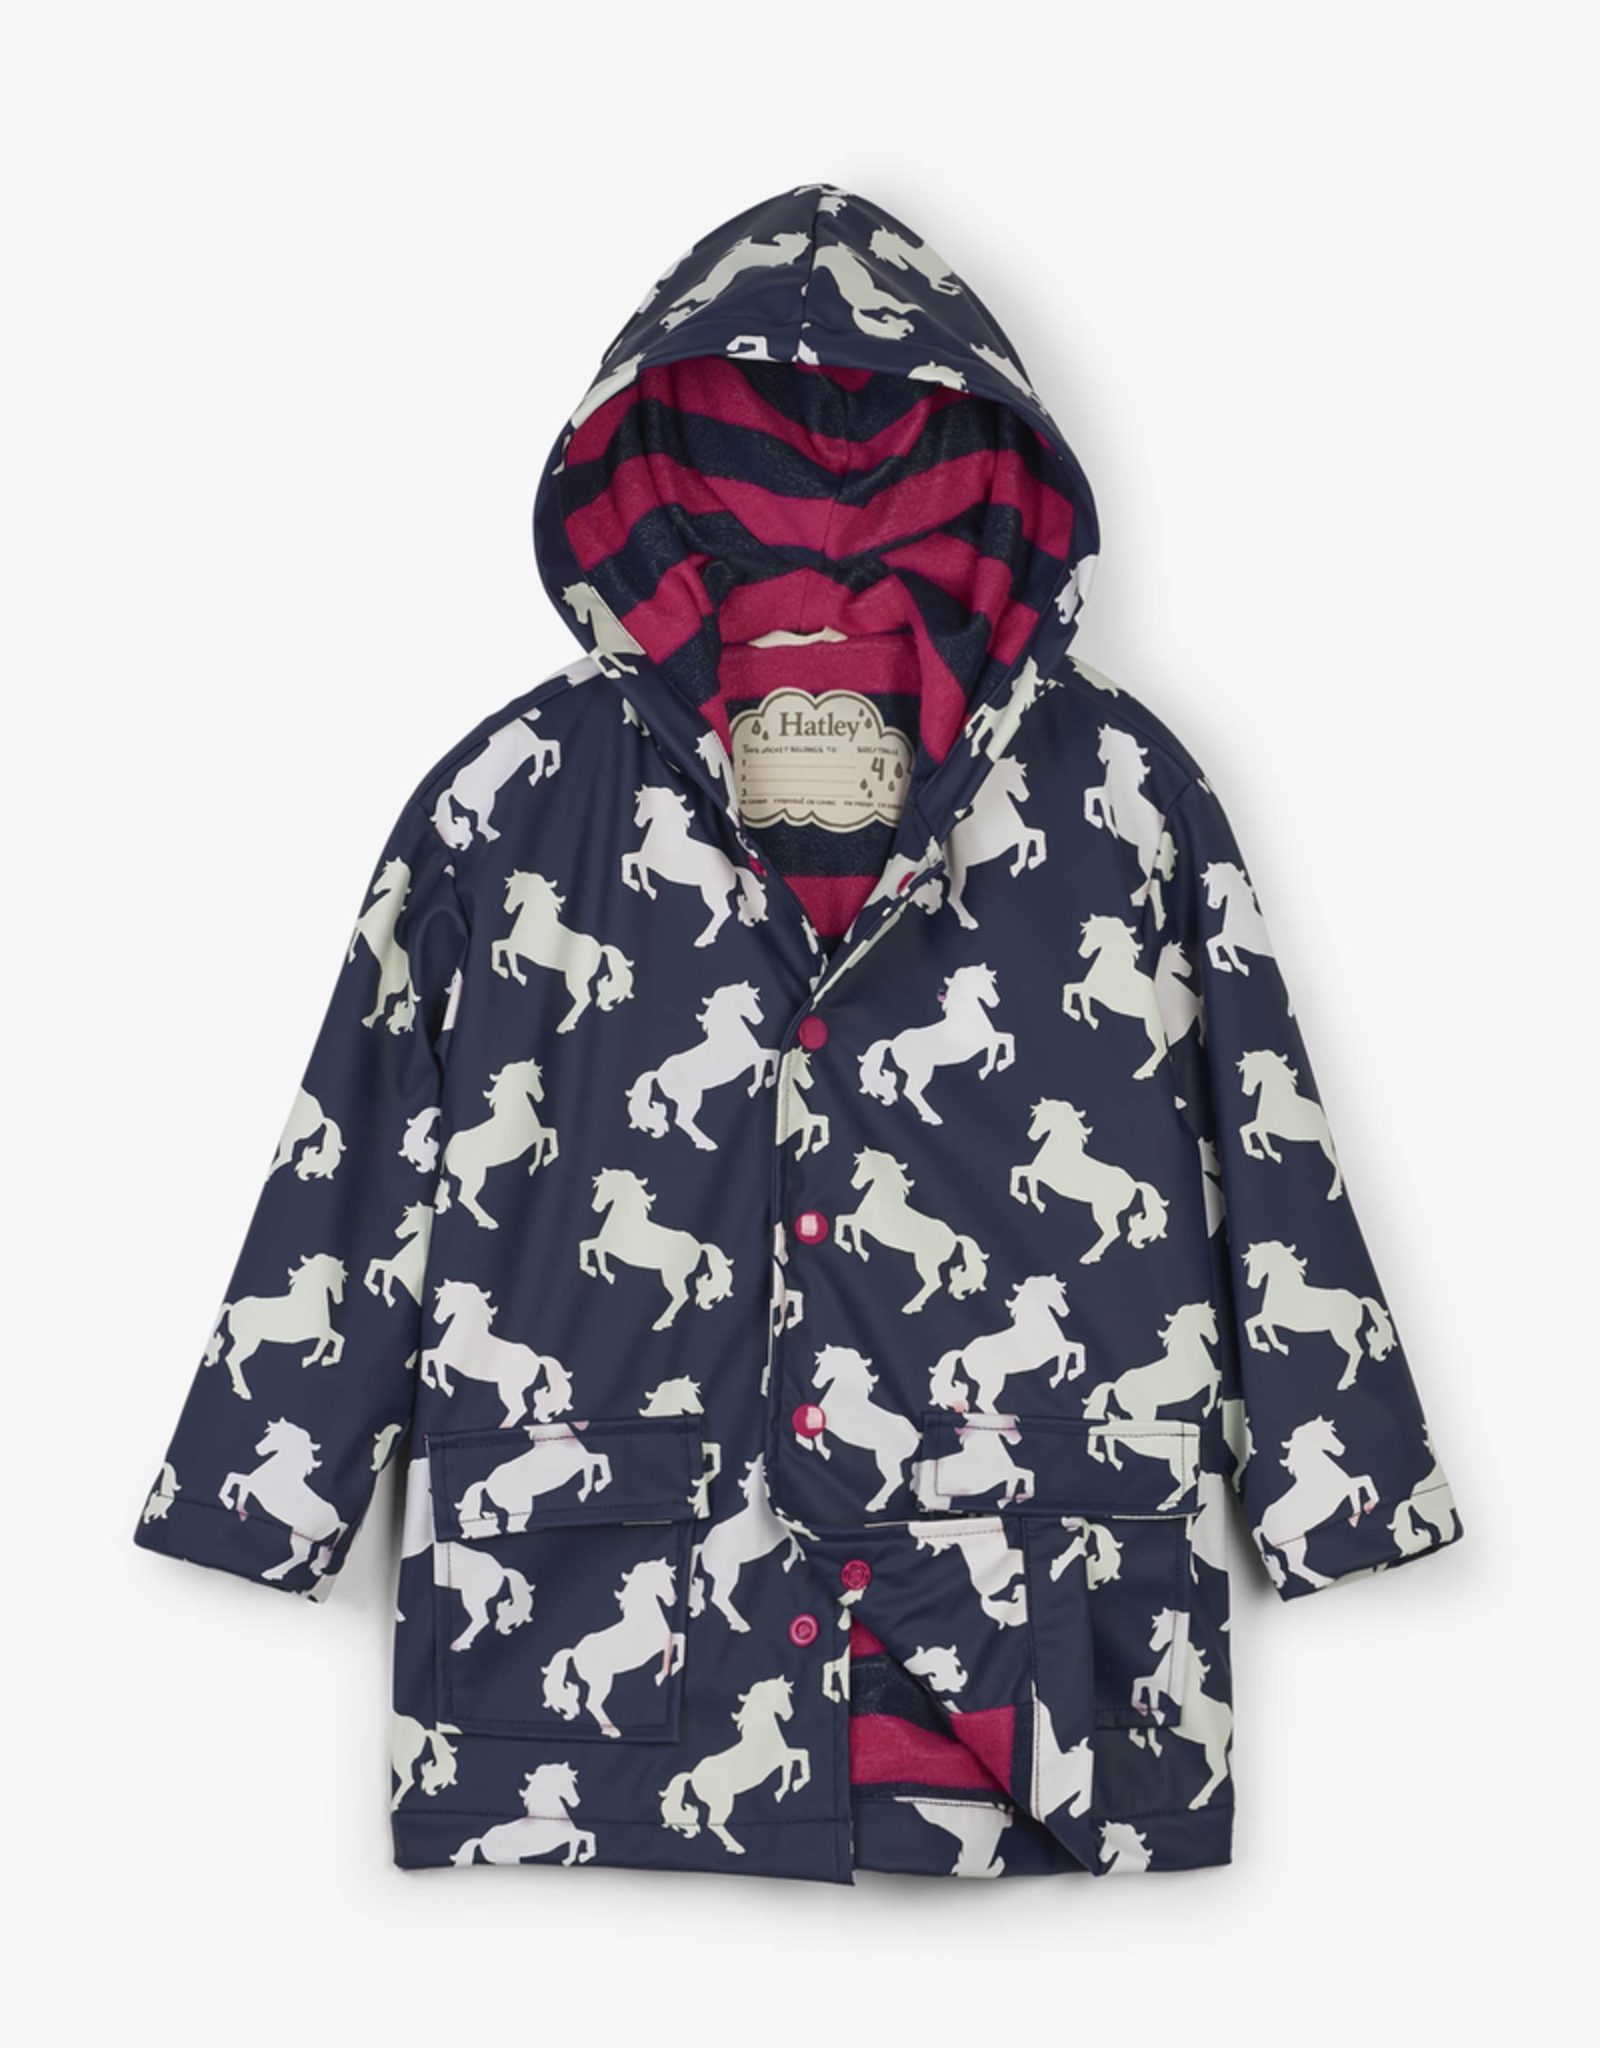 Hatley Playful Horses Colour Changing Raincoat for Girl